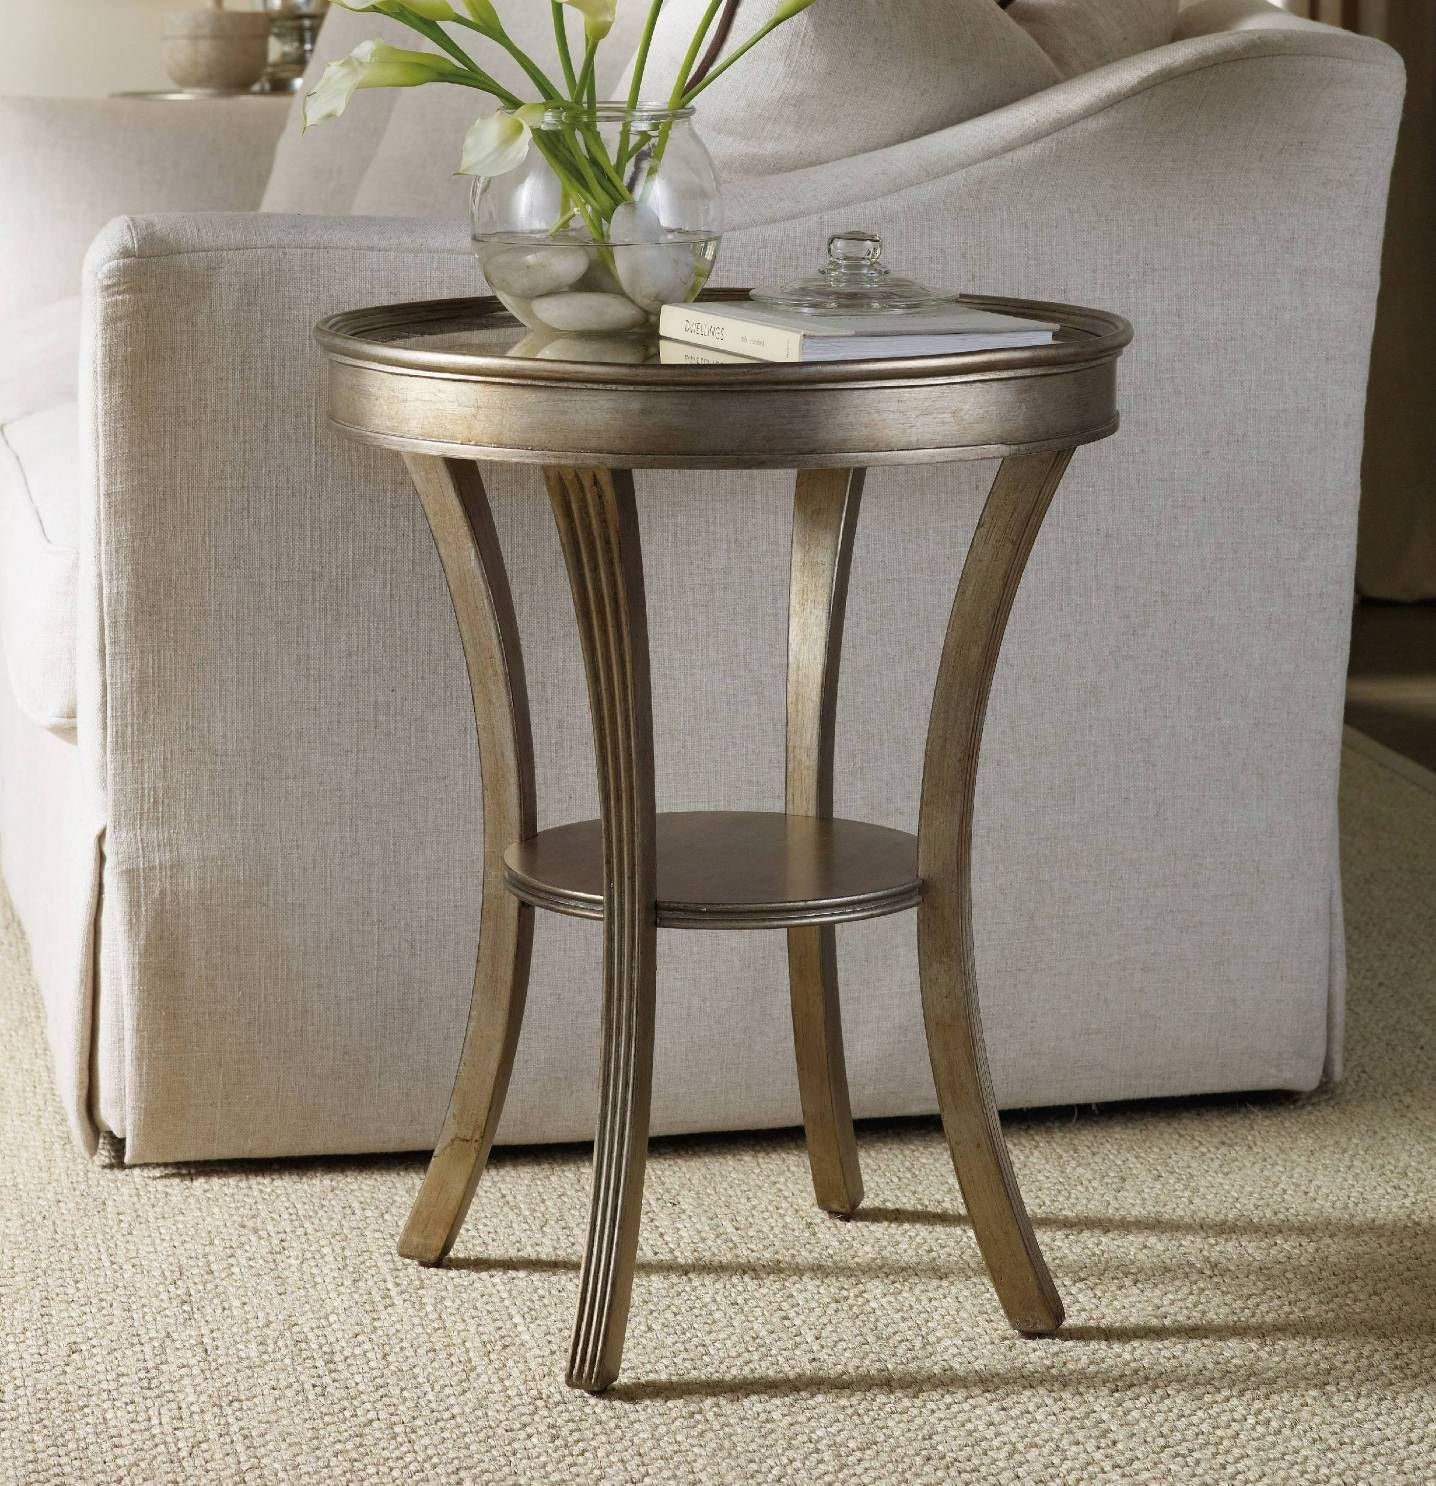 small accent tables stylish touch with benefits for your home unique table lamp base lampshade fittings patio umbrella pottery barn corner desk hammered copper side super skinny